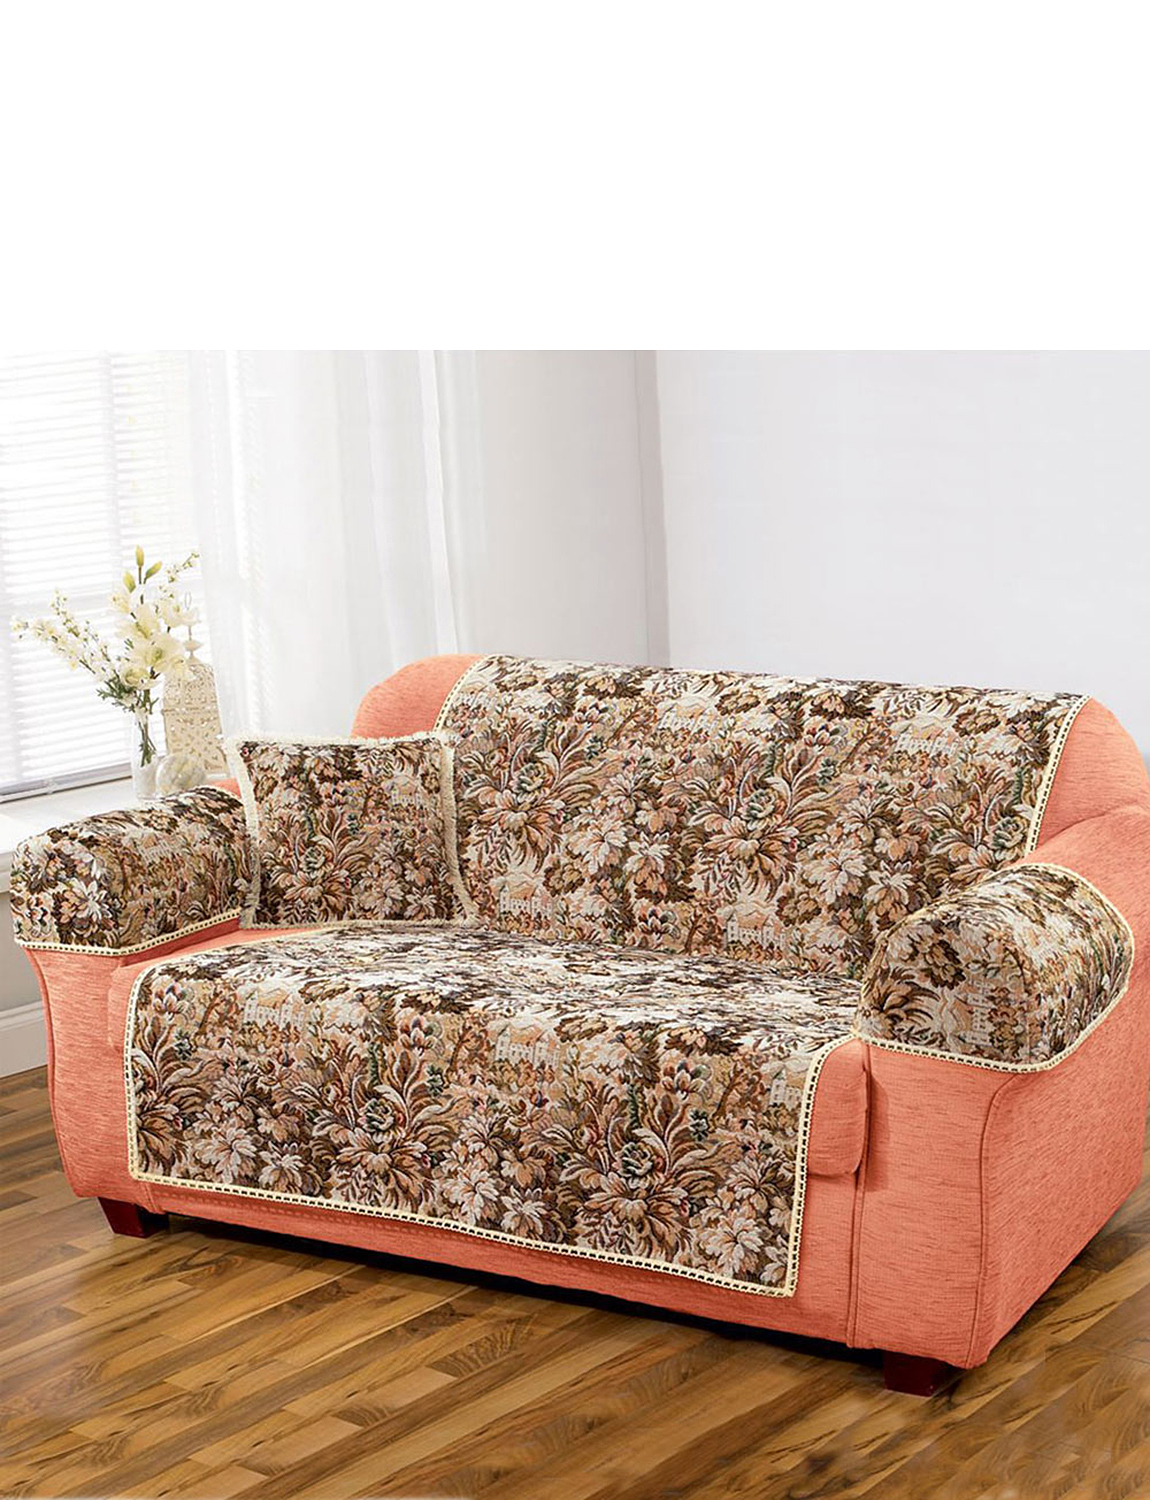 Castle tapestry furniture protectors home textiles for Furniture guard